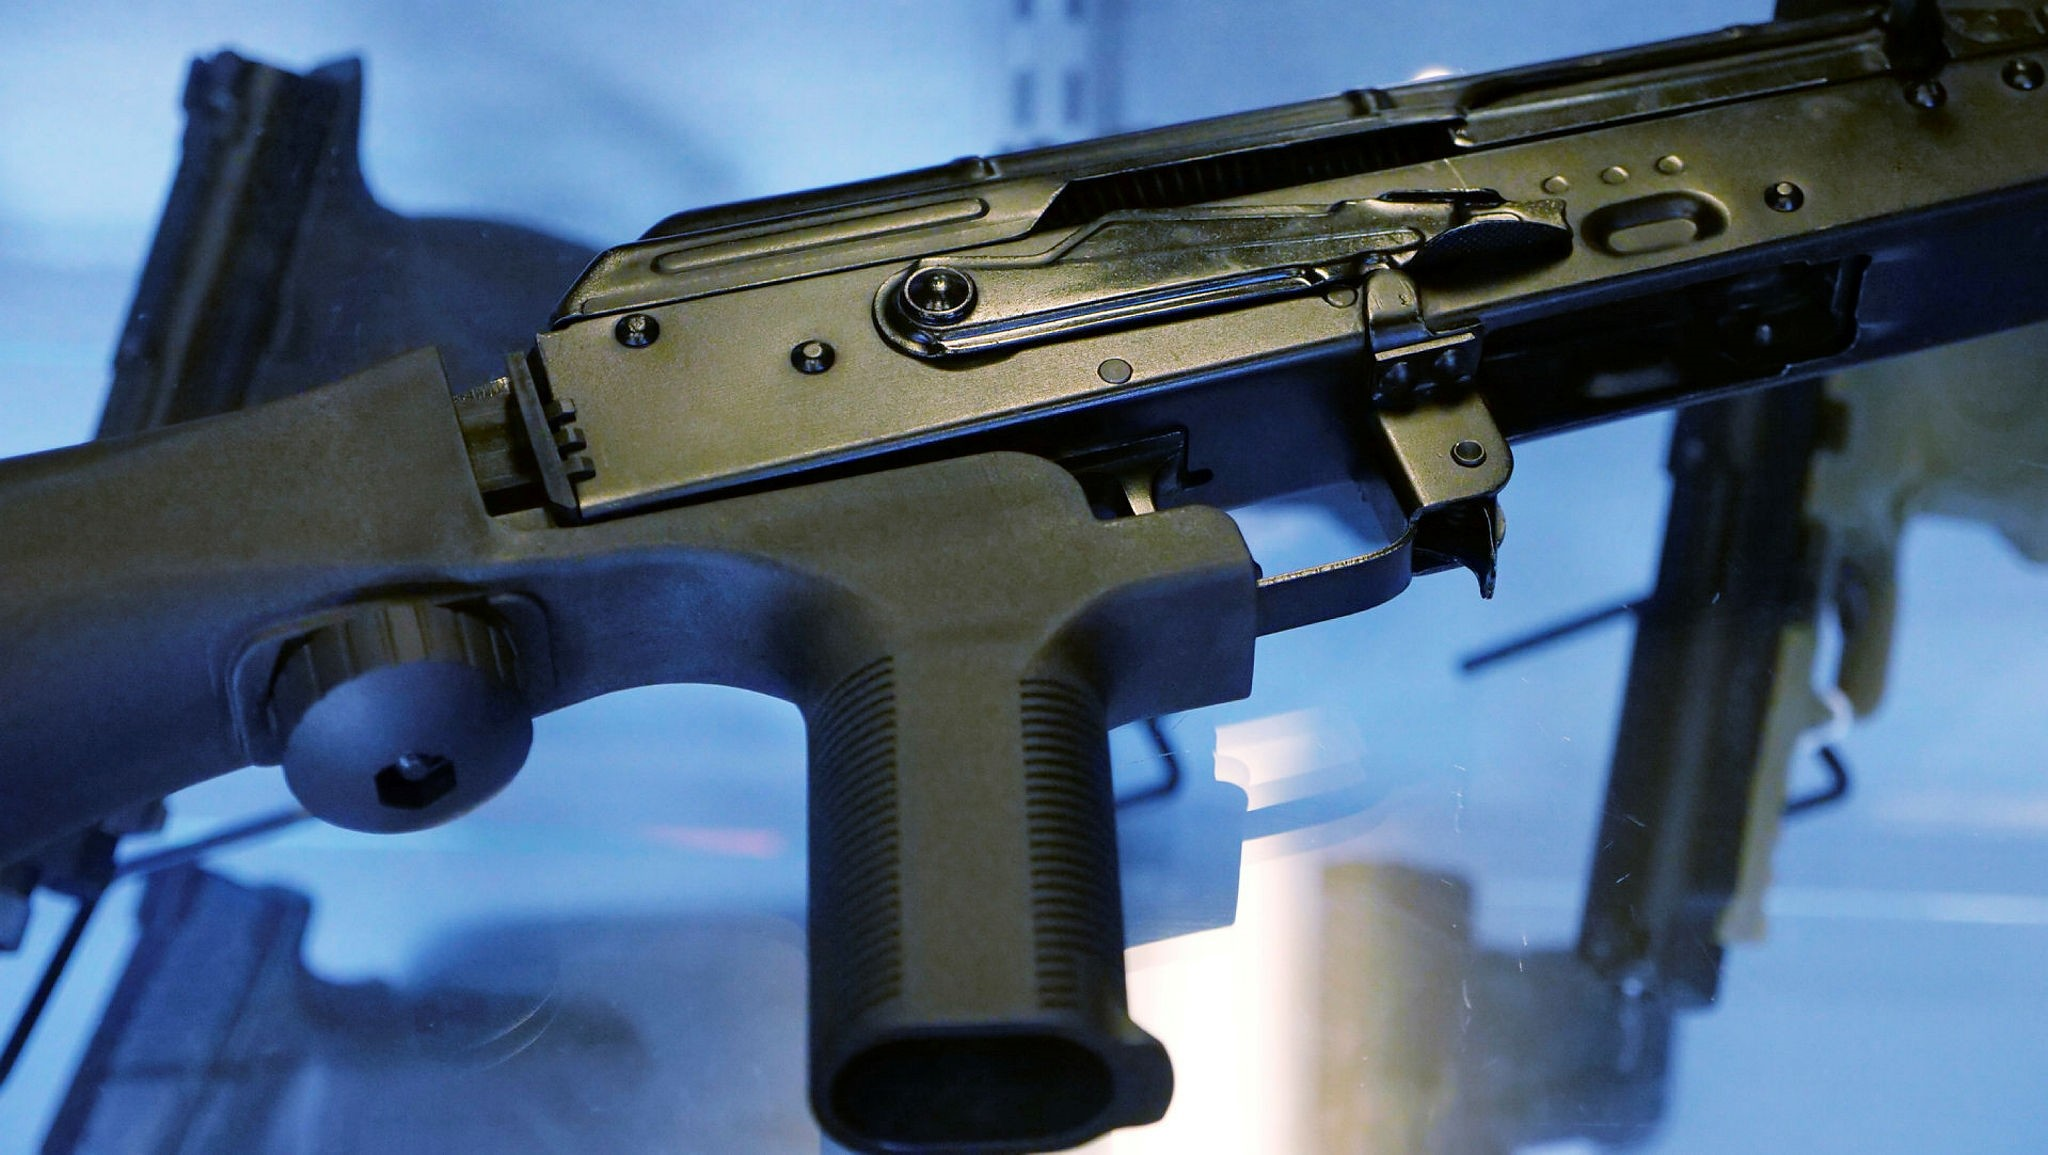 In this Oct. 4, 2017, file photo, a device called a ,bump stock, is attached to a semi-automatic rifle at the Gun Vault store and shooting range in South Jordan, Utah. (AP Photo)